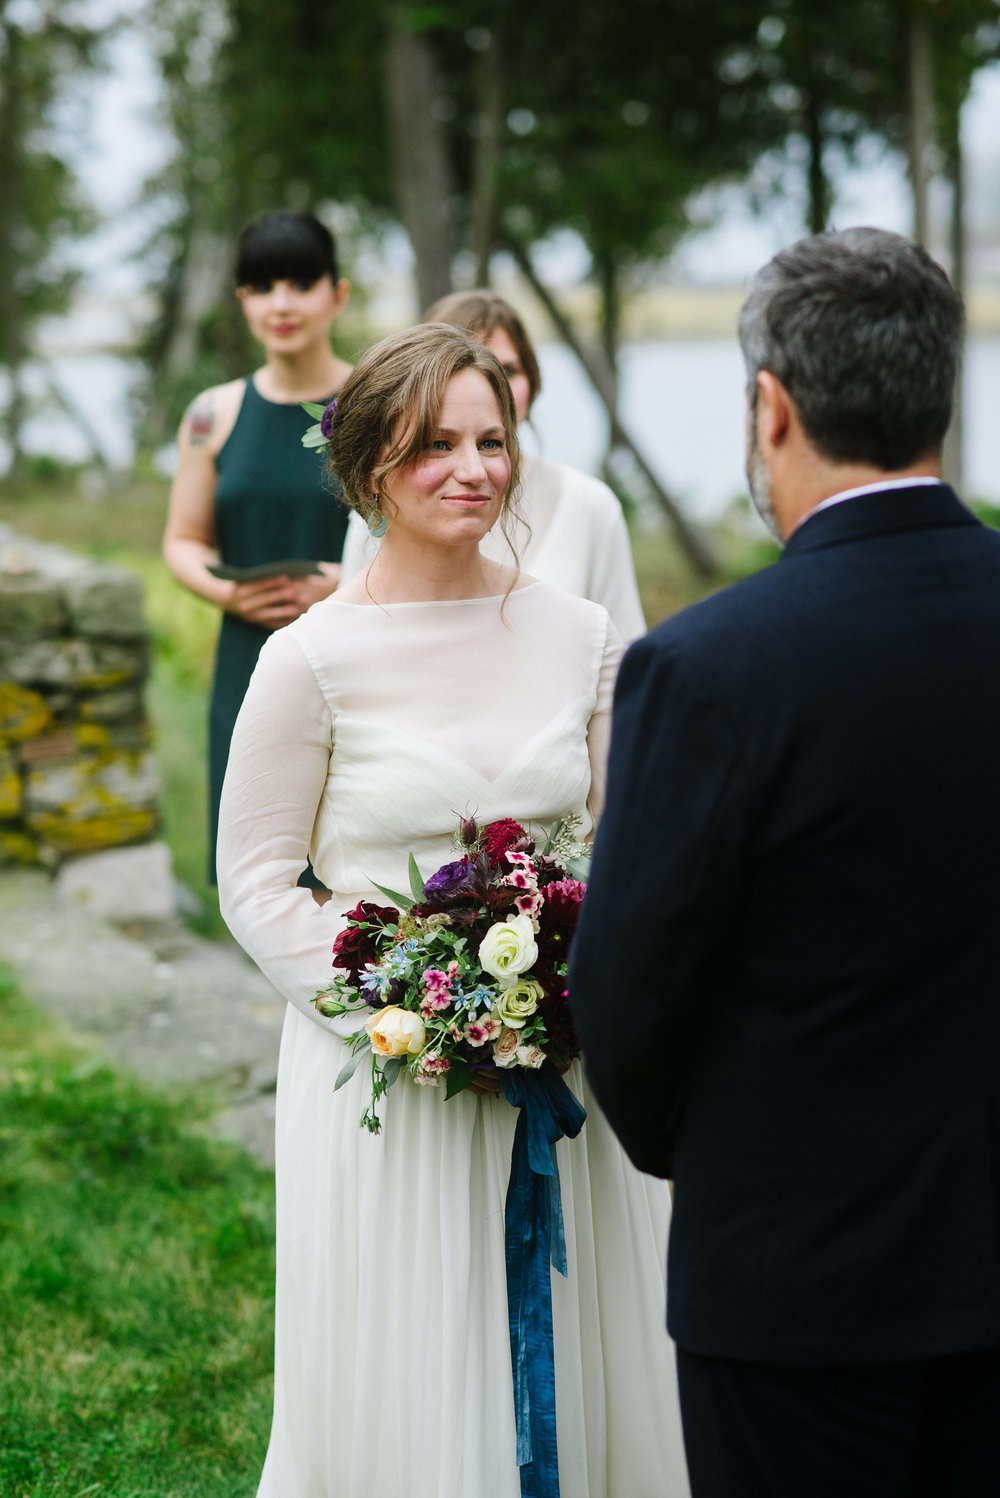 Watershed_Floral_Harpswell_Maine_Coastal_Wedding_0215.JPG